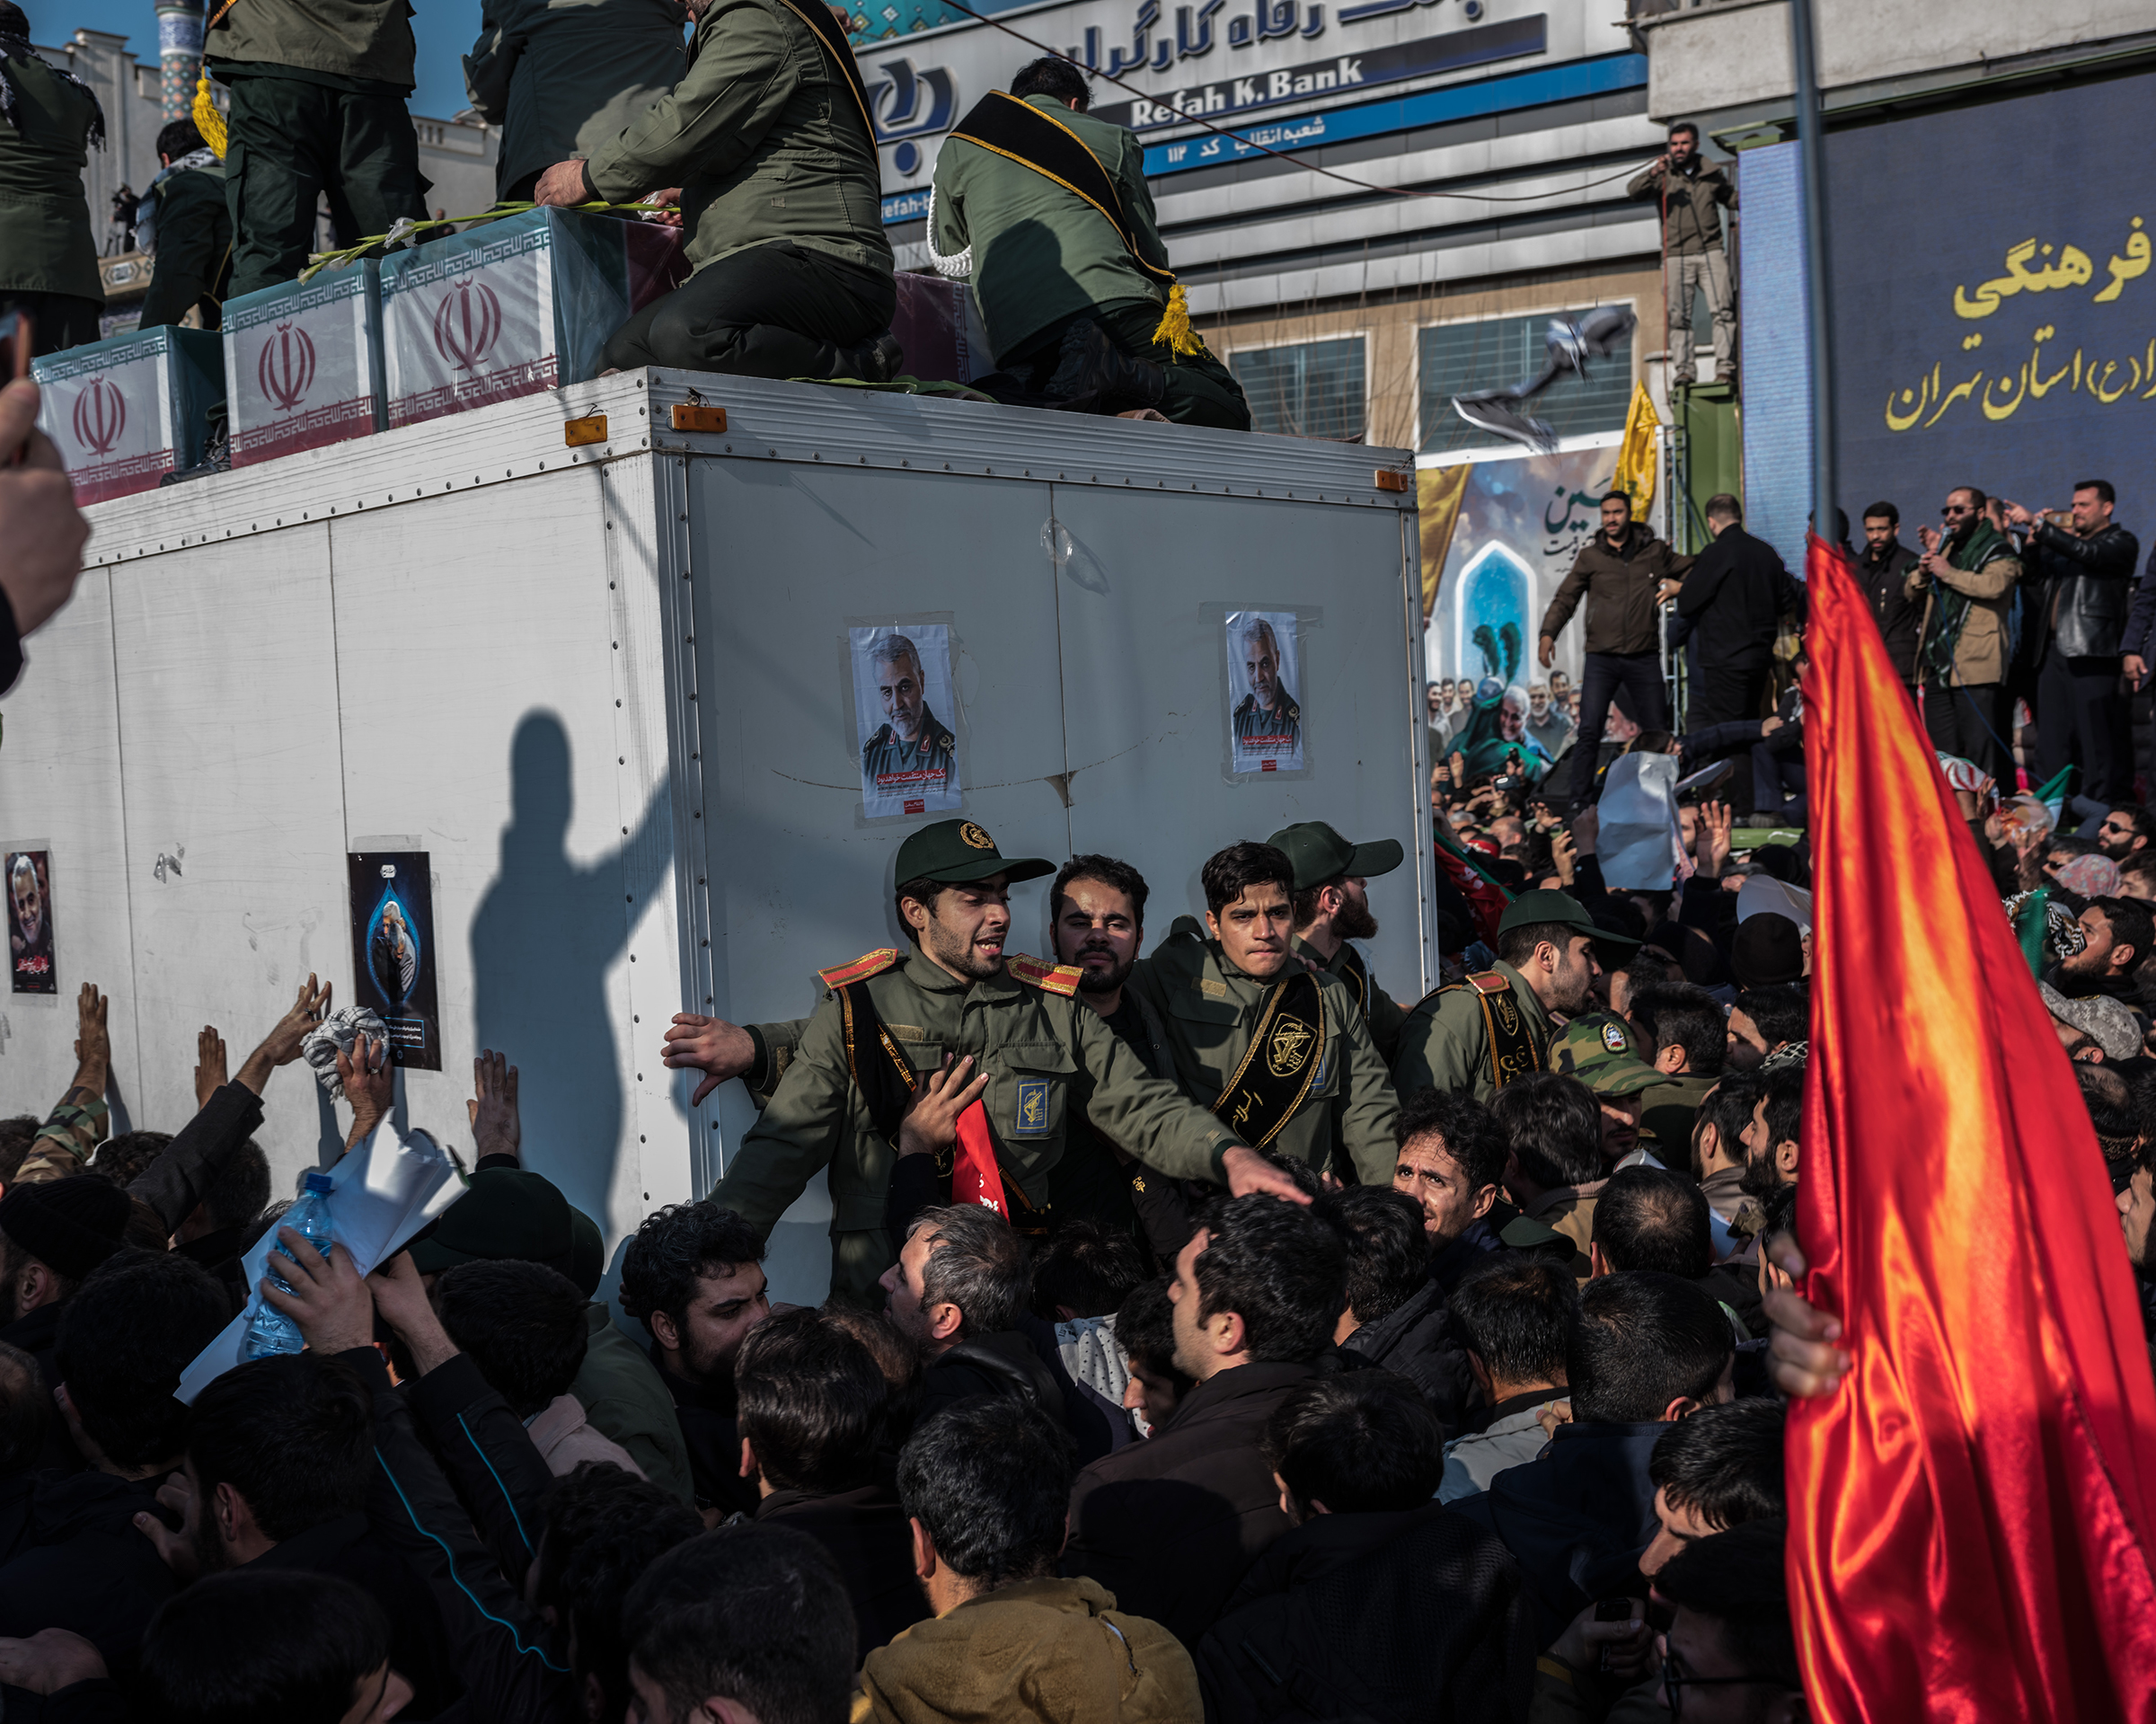 Soleimani's coffin is surrounded by throngs in Tehran's Enghelab Square on Jan. 6.